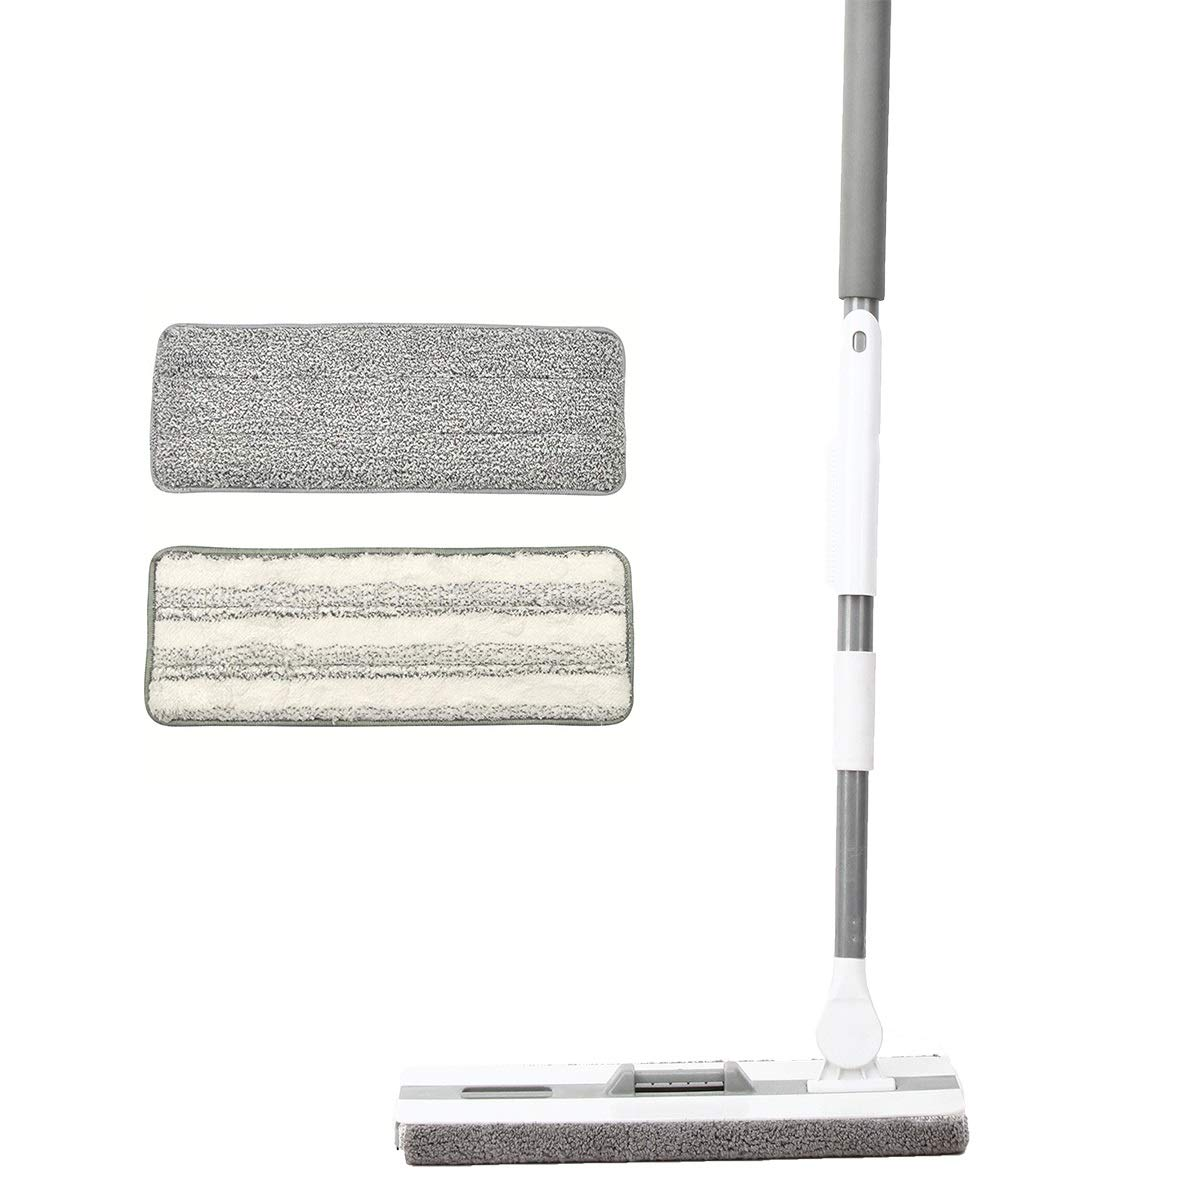 PICAD Microfiber Flat Mop Multi Slots Switch for Cleaning Hardwood and Floors, Includes: 1 Mop, 1 Dirt Removal Scrubber, 2 Pads Refills by PICAD (Image #1)